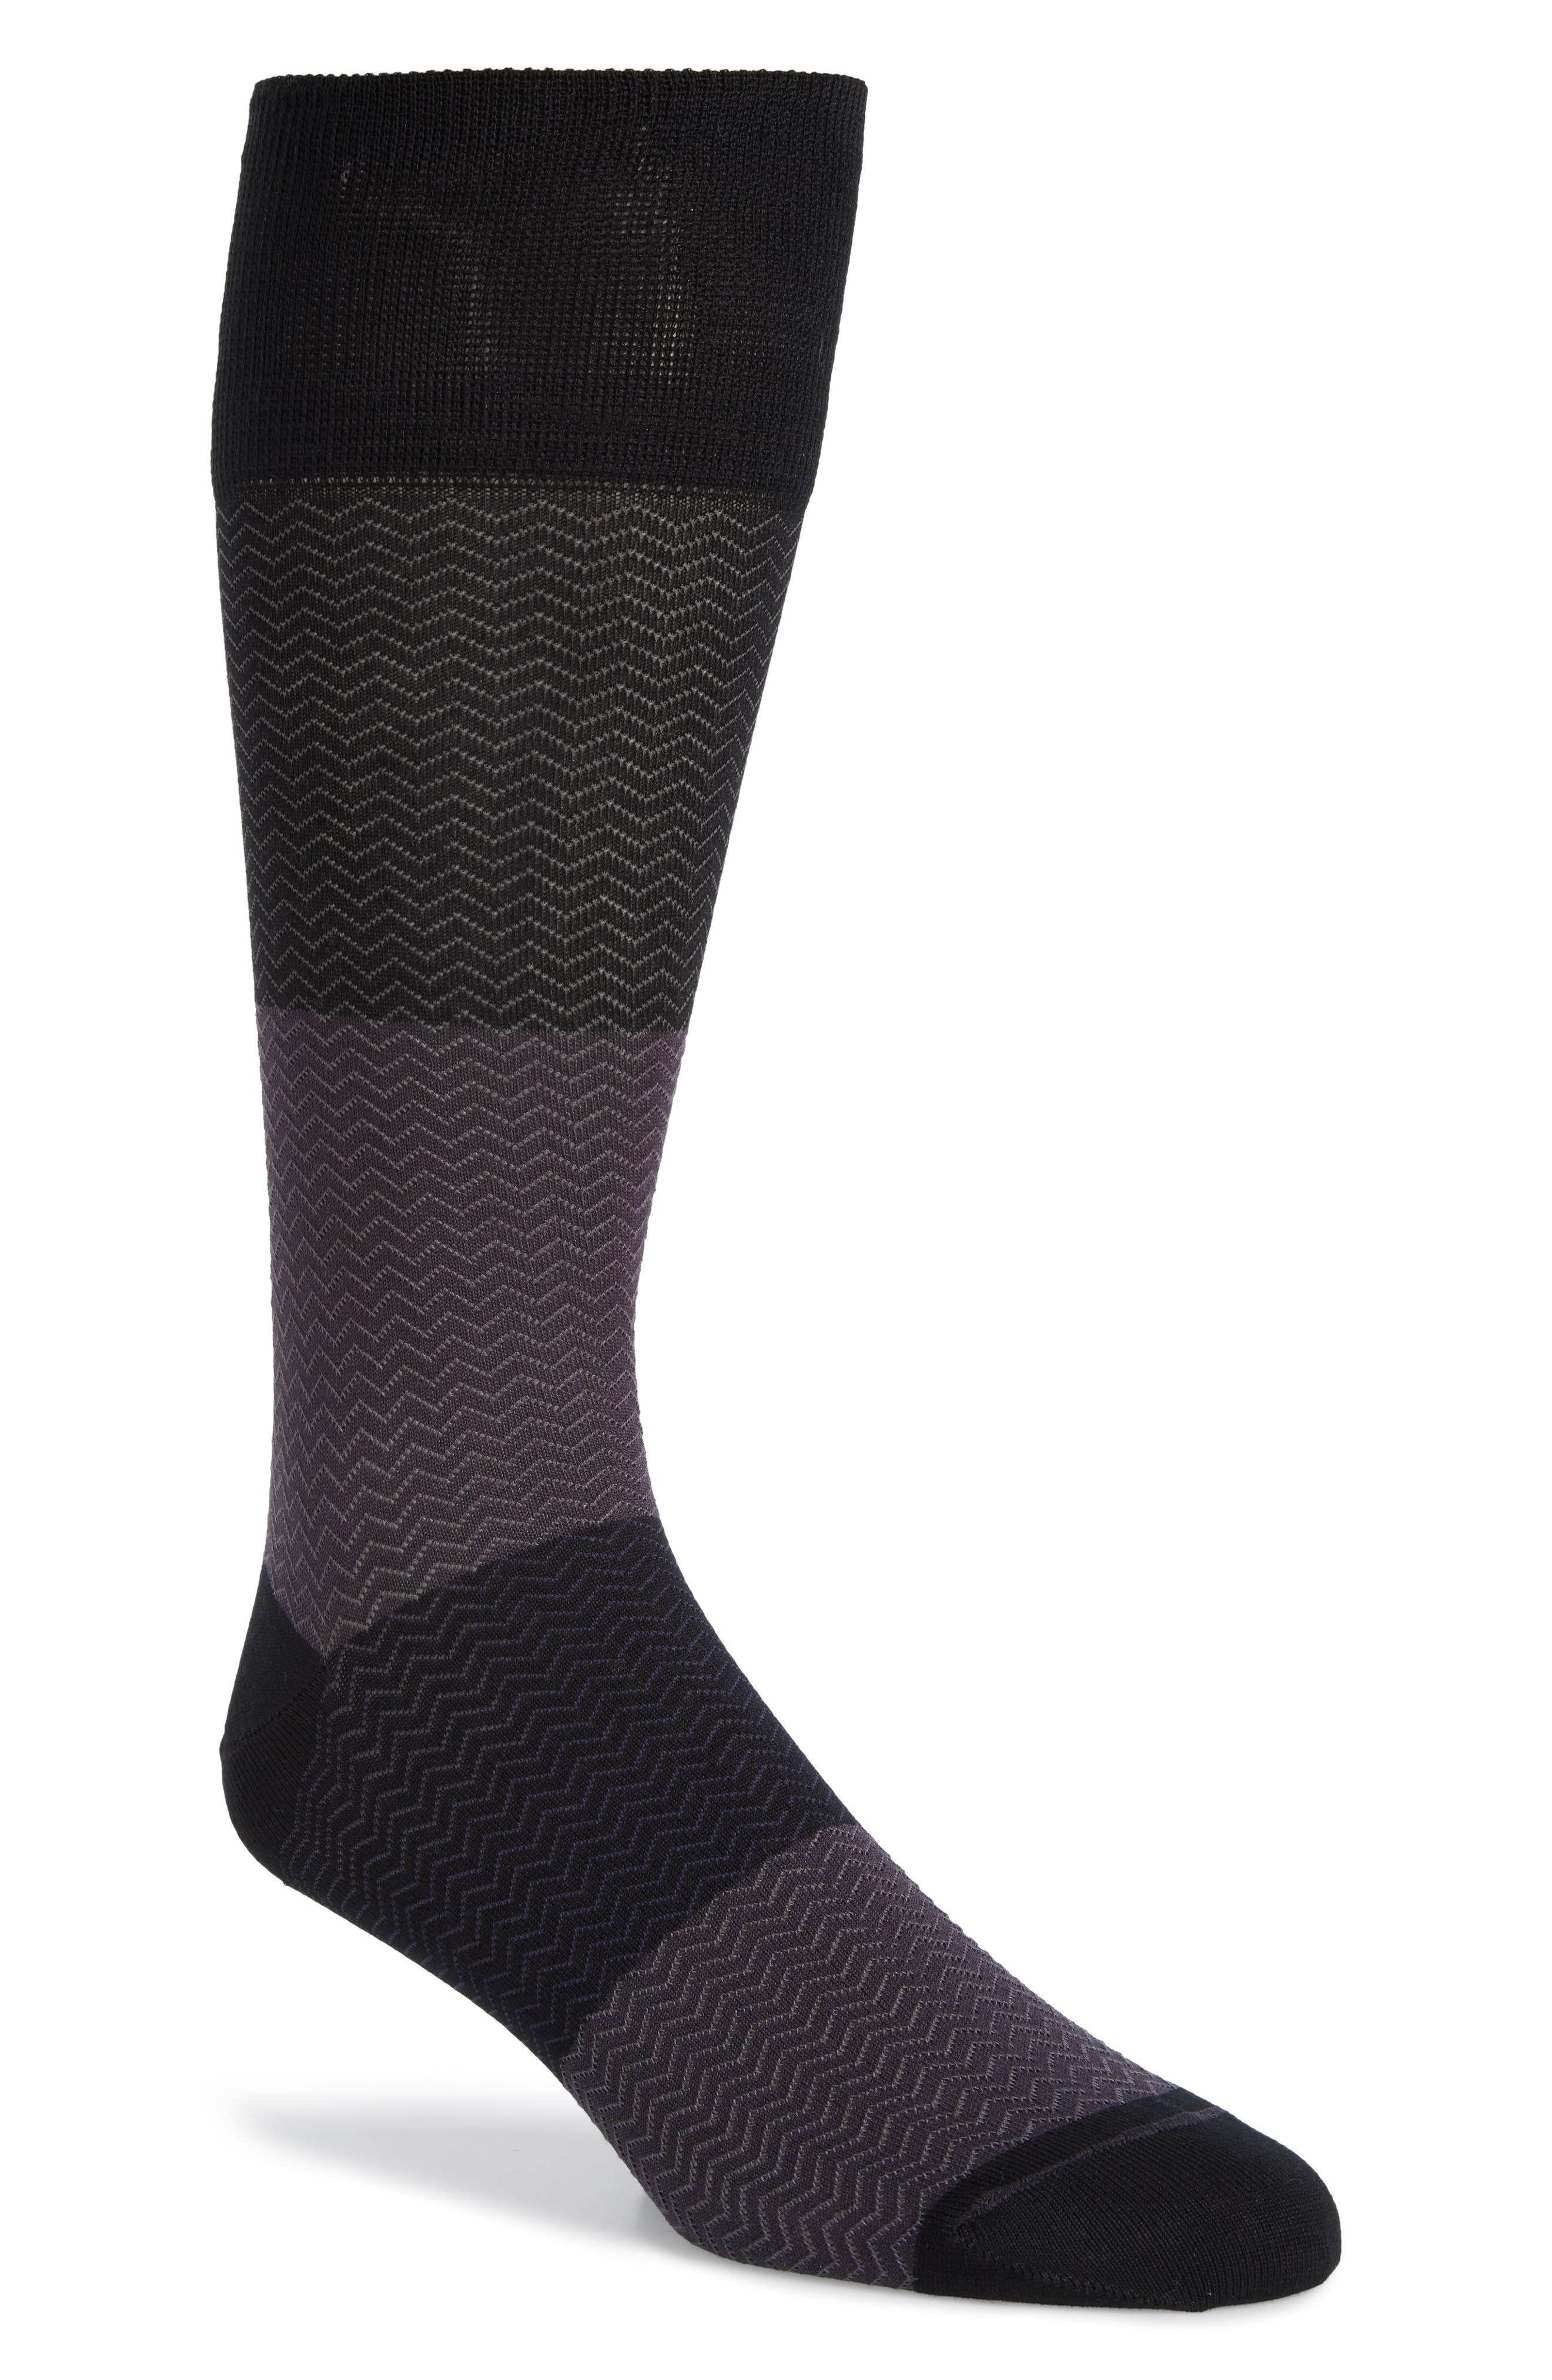 Gradient Herringbone Socks,                         Main,                         color, BLACK/ GREY